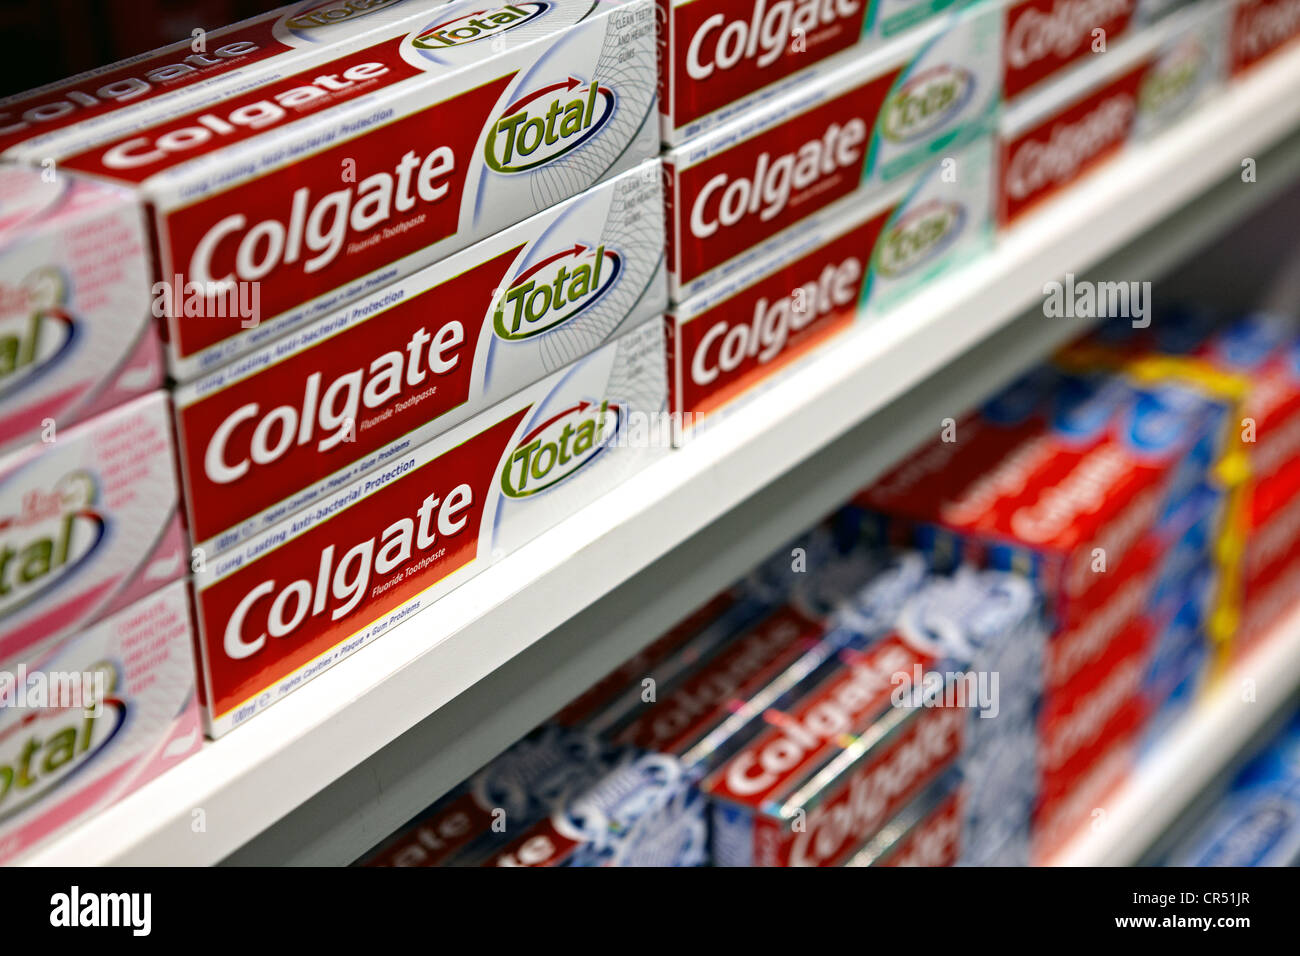 Colgate total toothpaste pictured on a supermarket shelf. Manufactured by Colgate-Palmolive - Stock Image